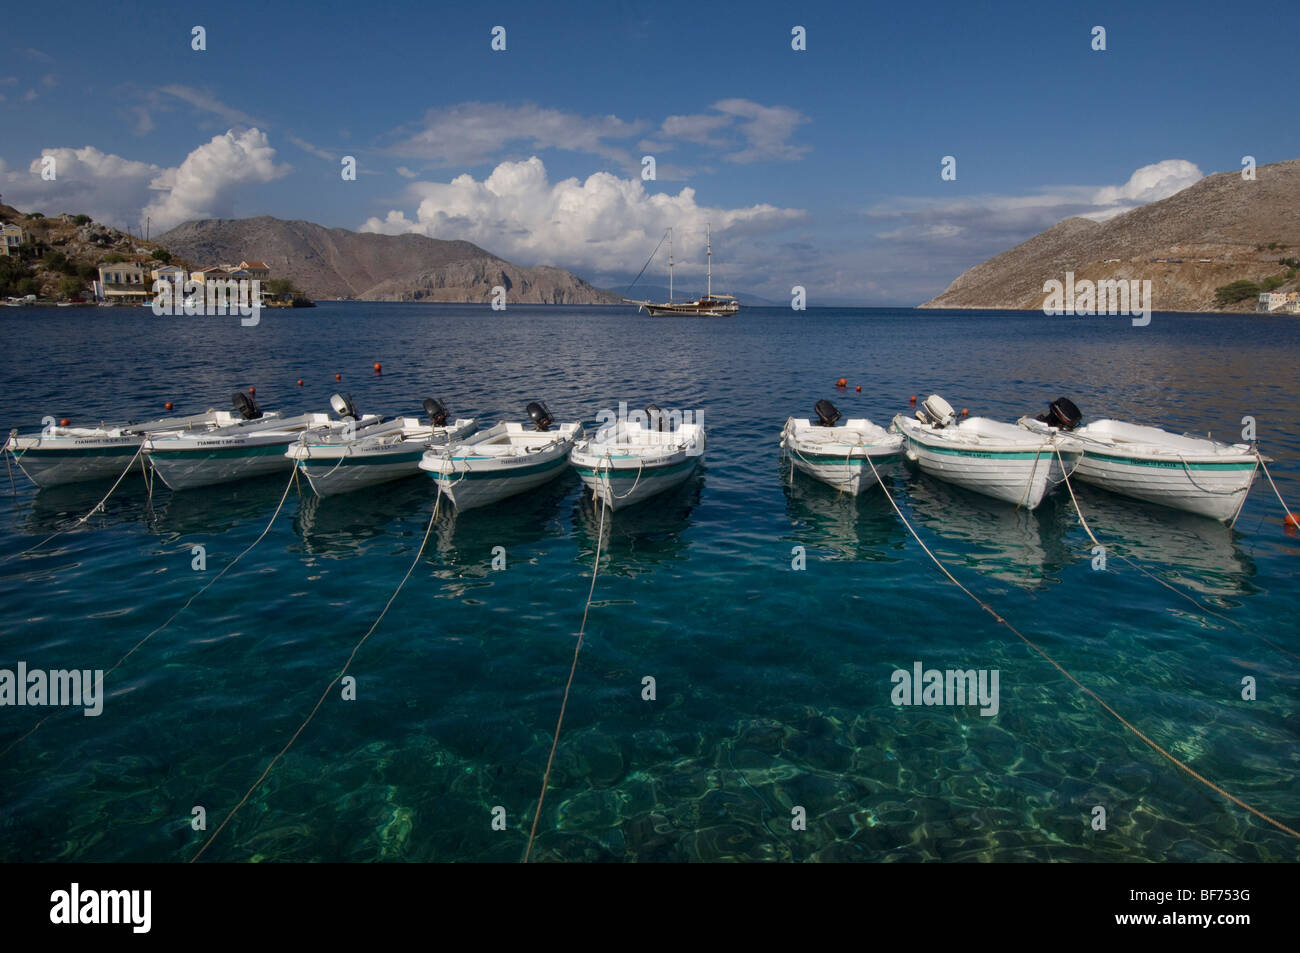 A row of eight small boats moored in the harbour of Symi Town, Greece. - Stock Image